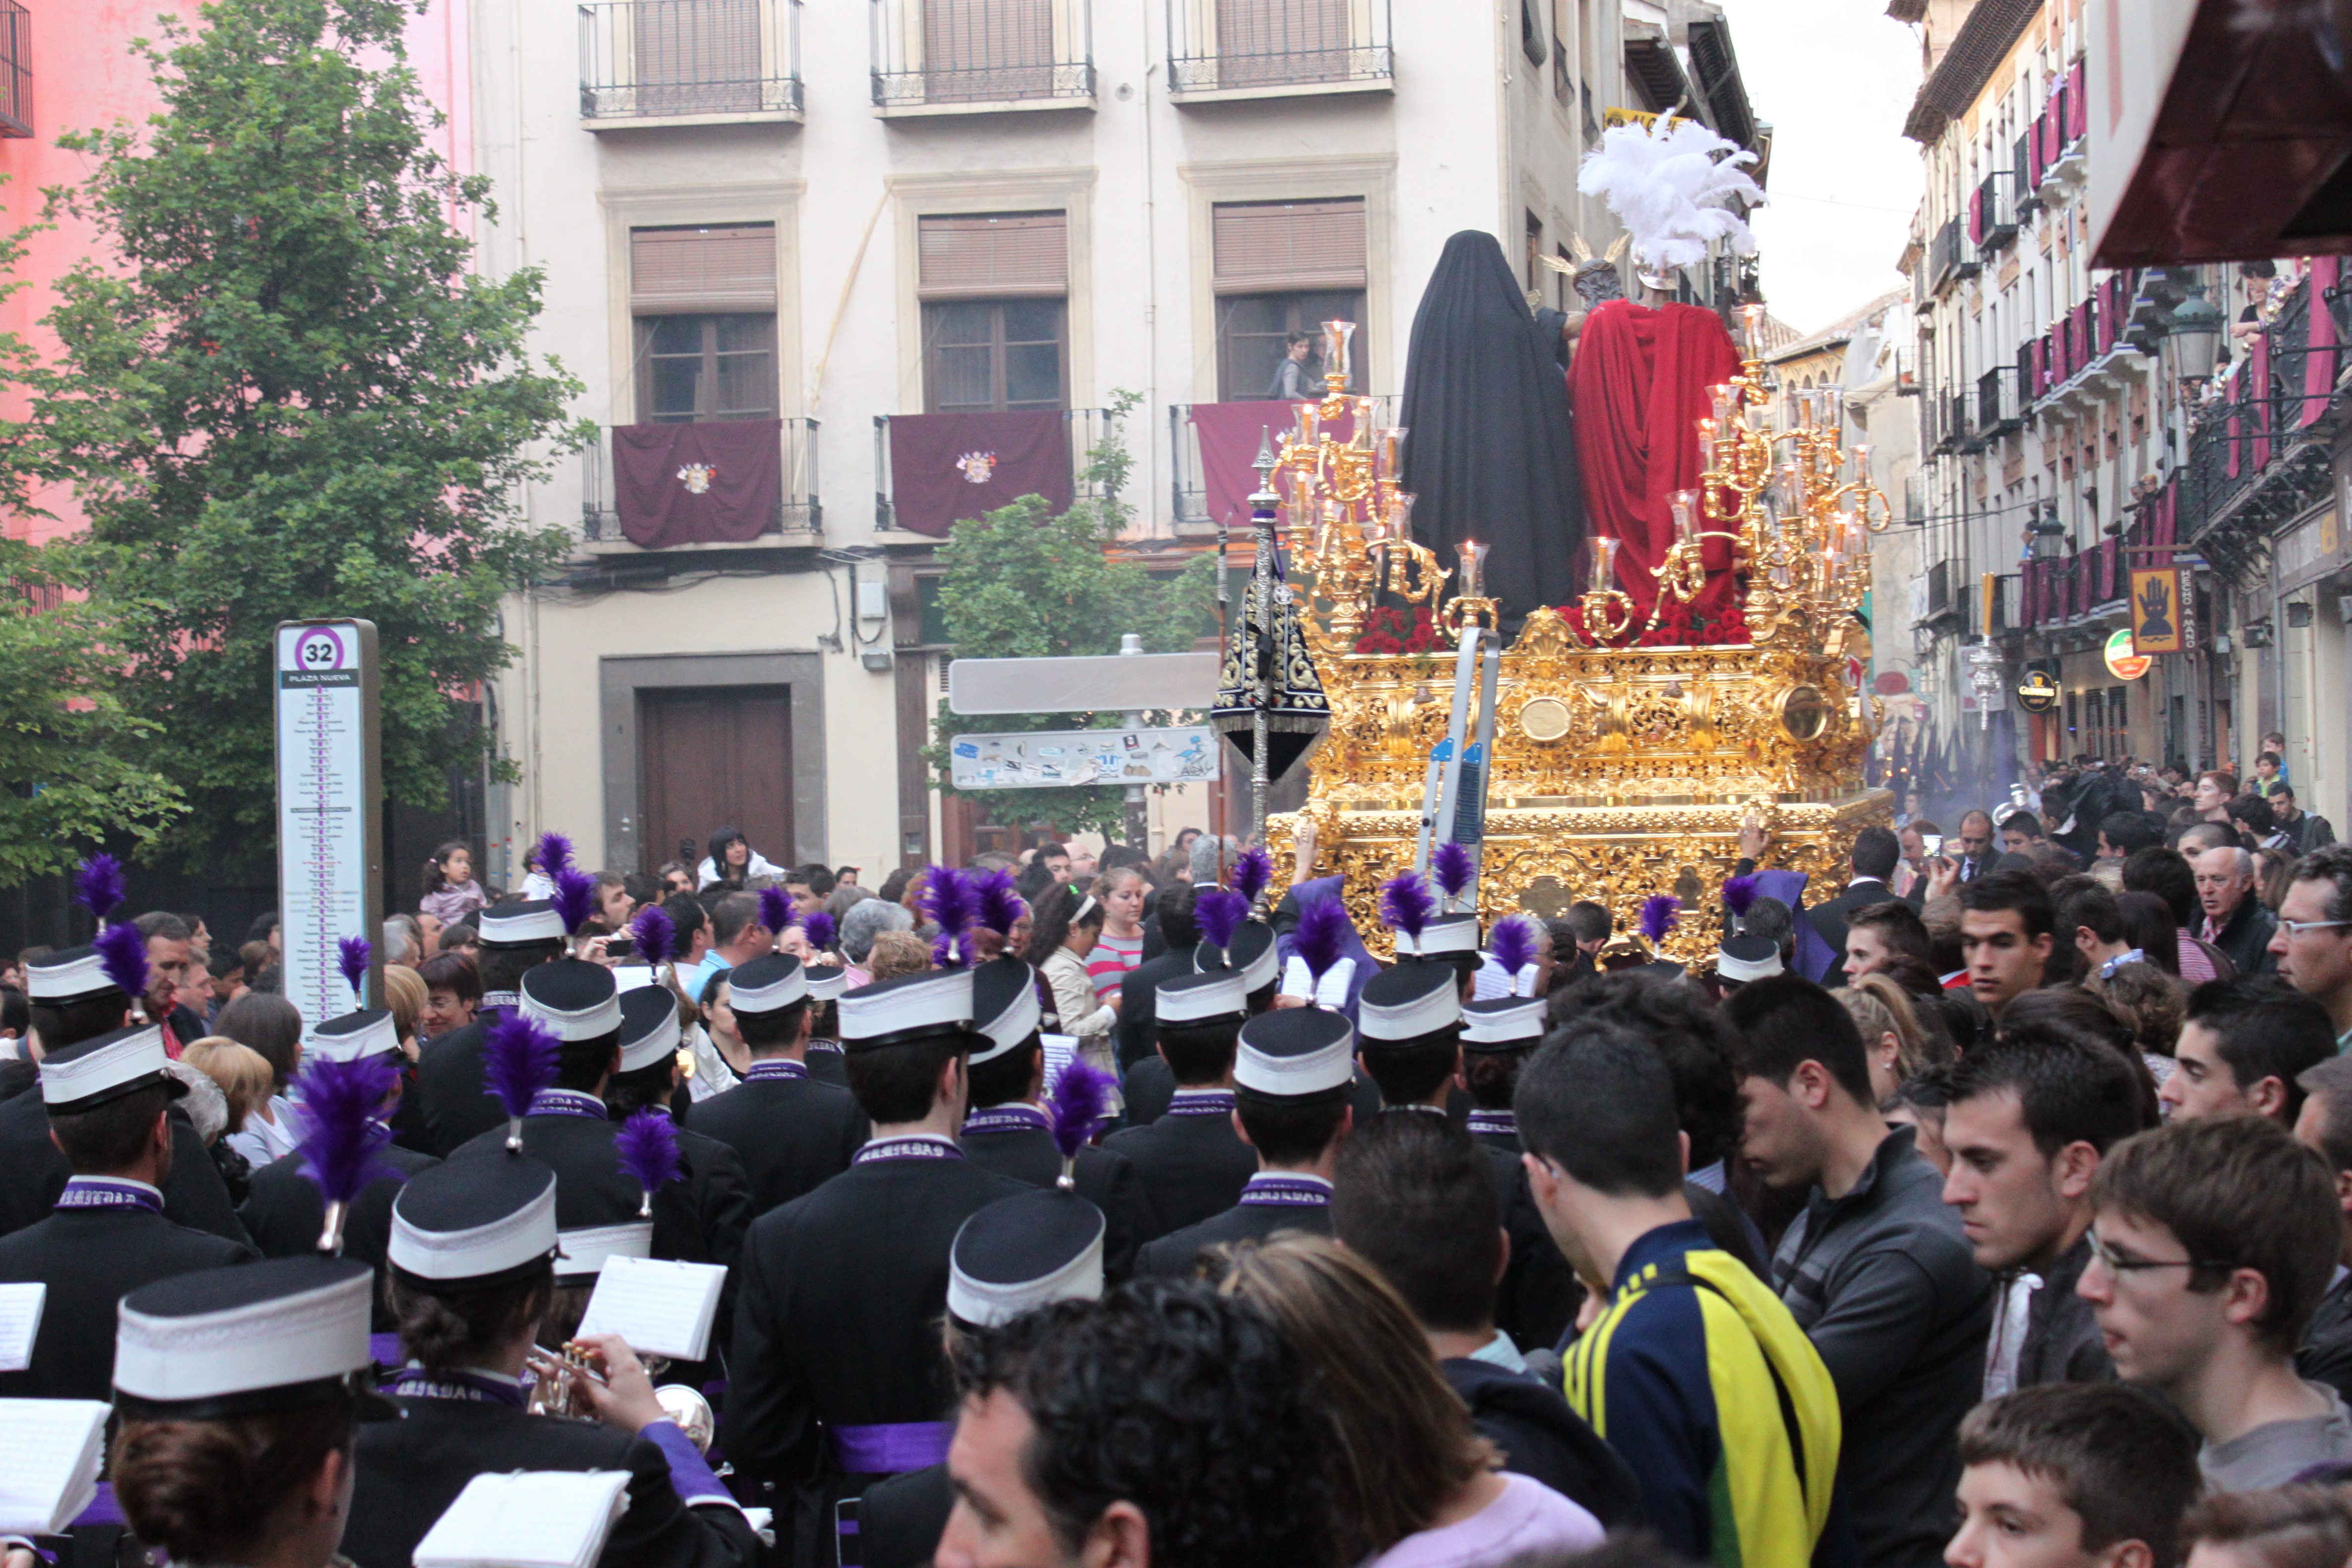 Experience the Passion of Jesus in Granada